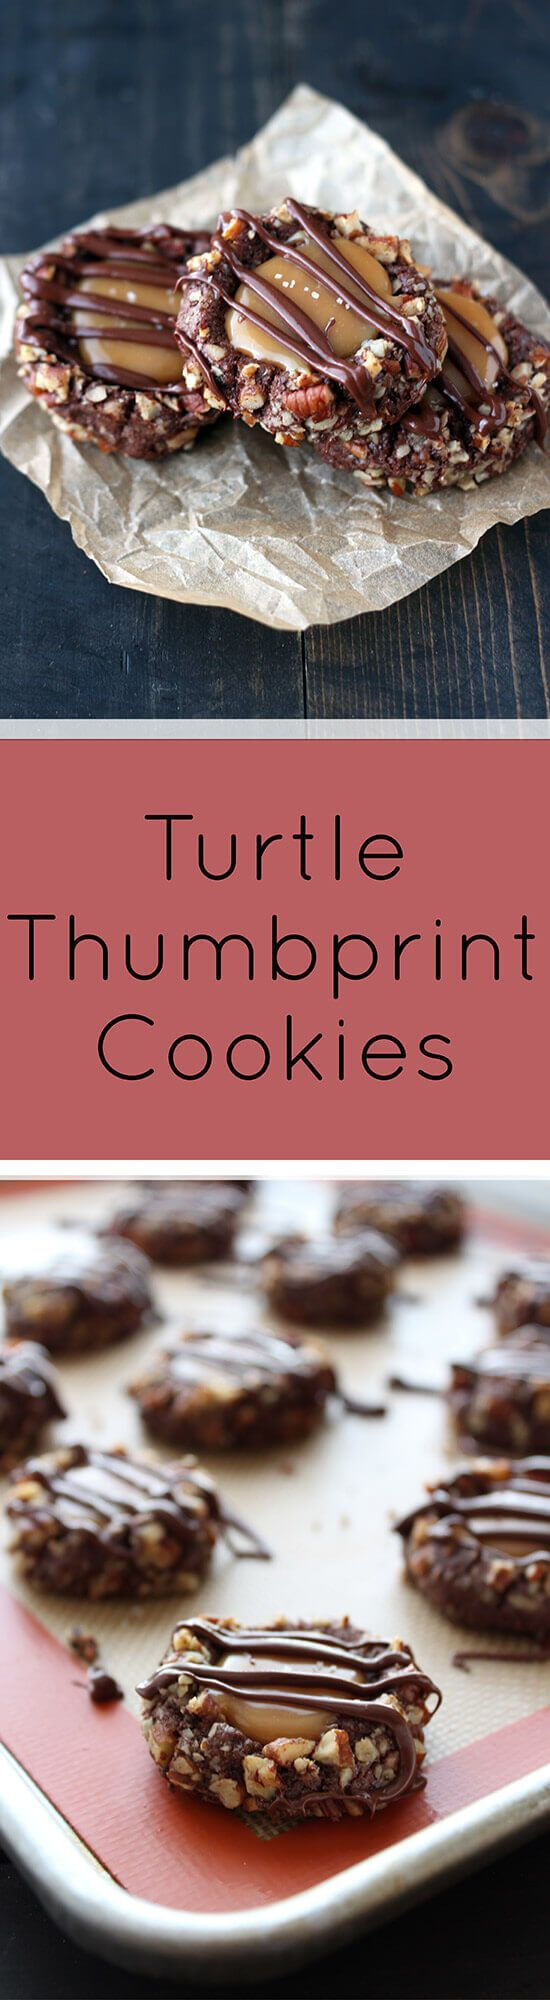 Turtle Thumbprint Cookies are mouthwatering with a cocoa cookie rolled in pecans, salted caramel, and chocolate drizzle!